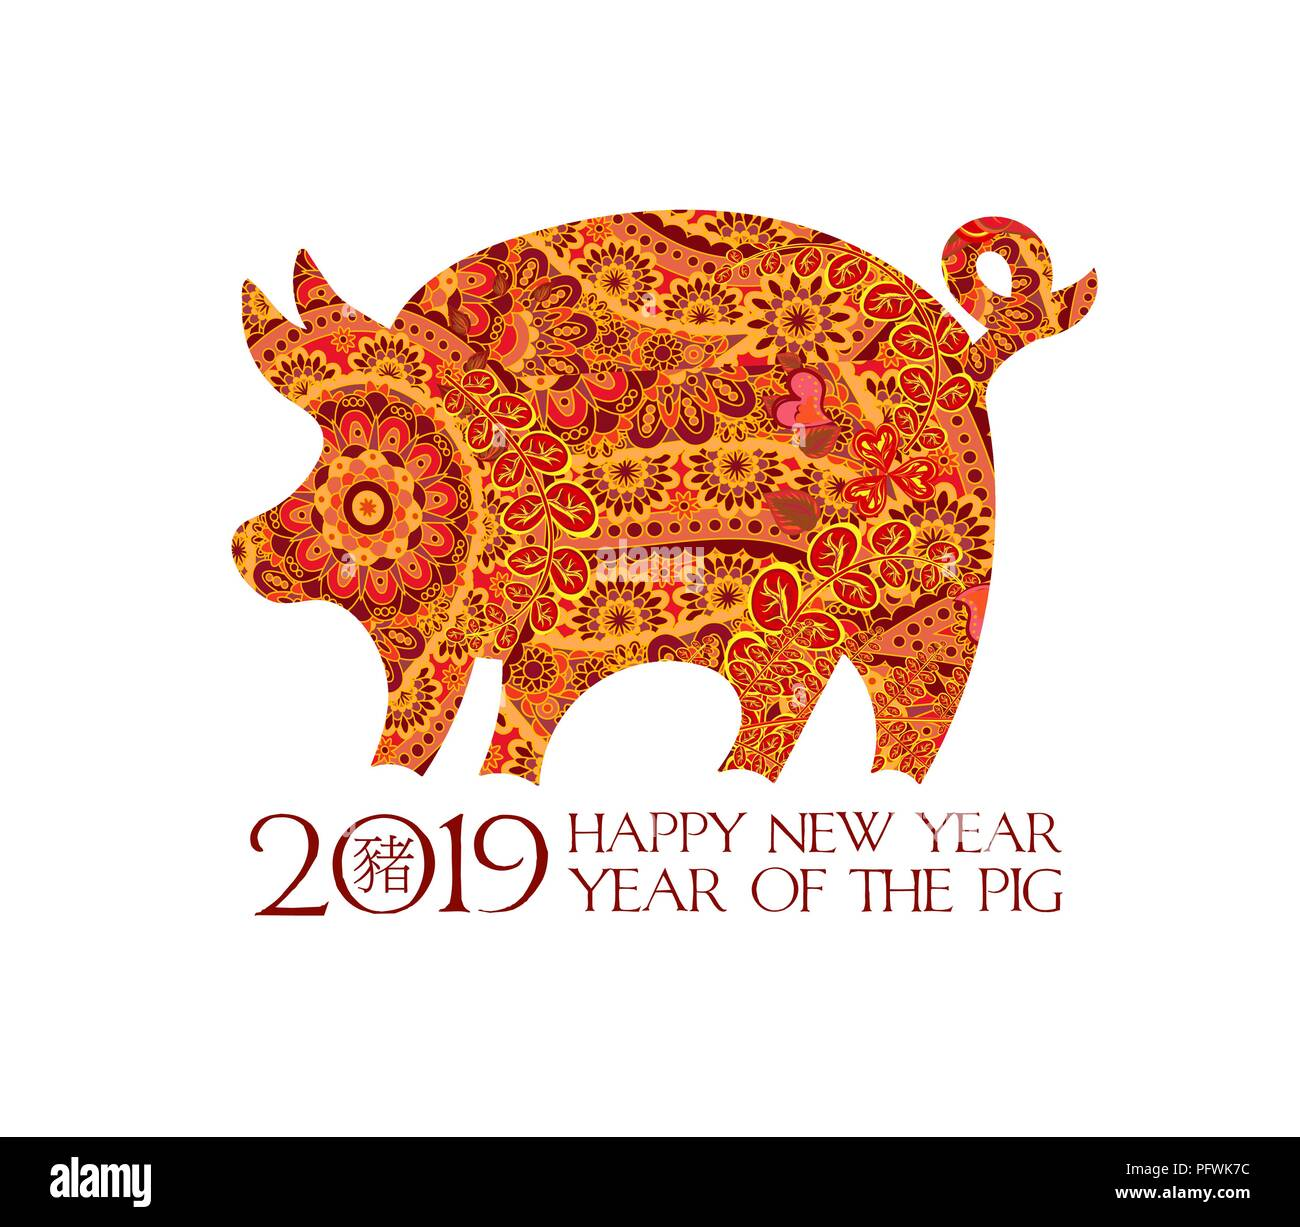 Hand Drawn Zentangle Ornate Pig 2019 Chinese New Year And Christmas